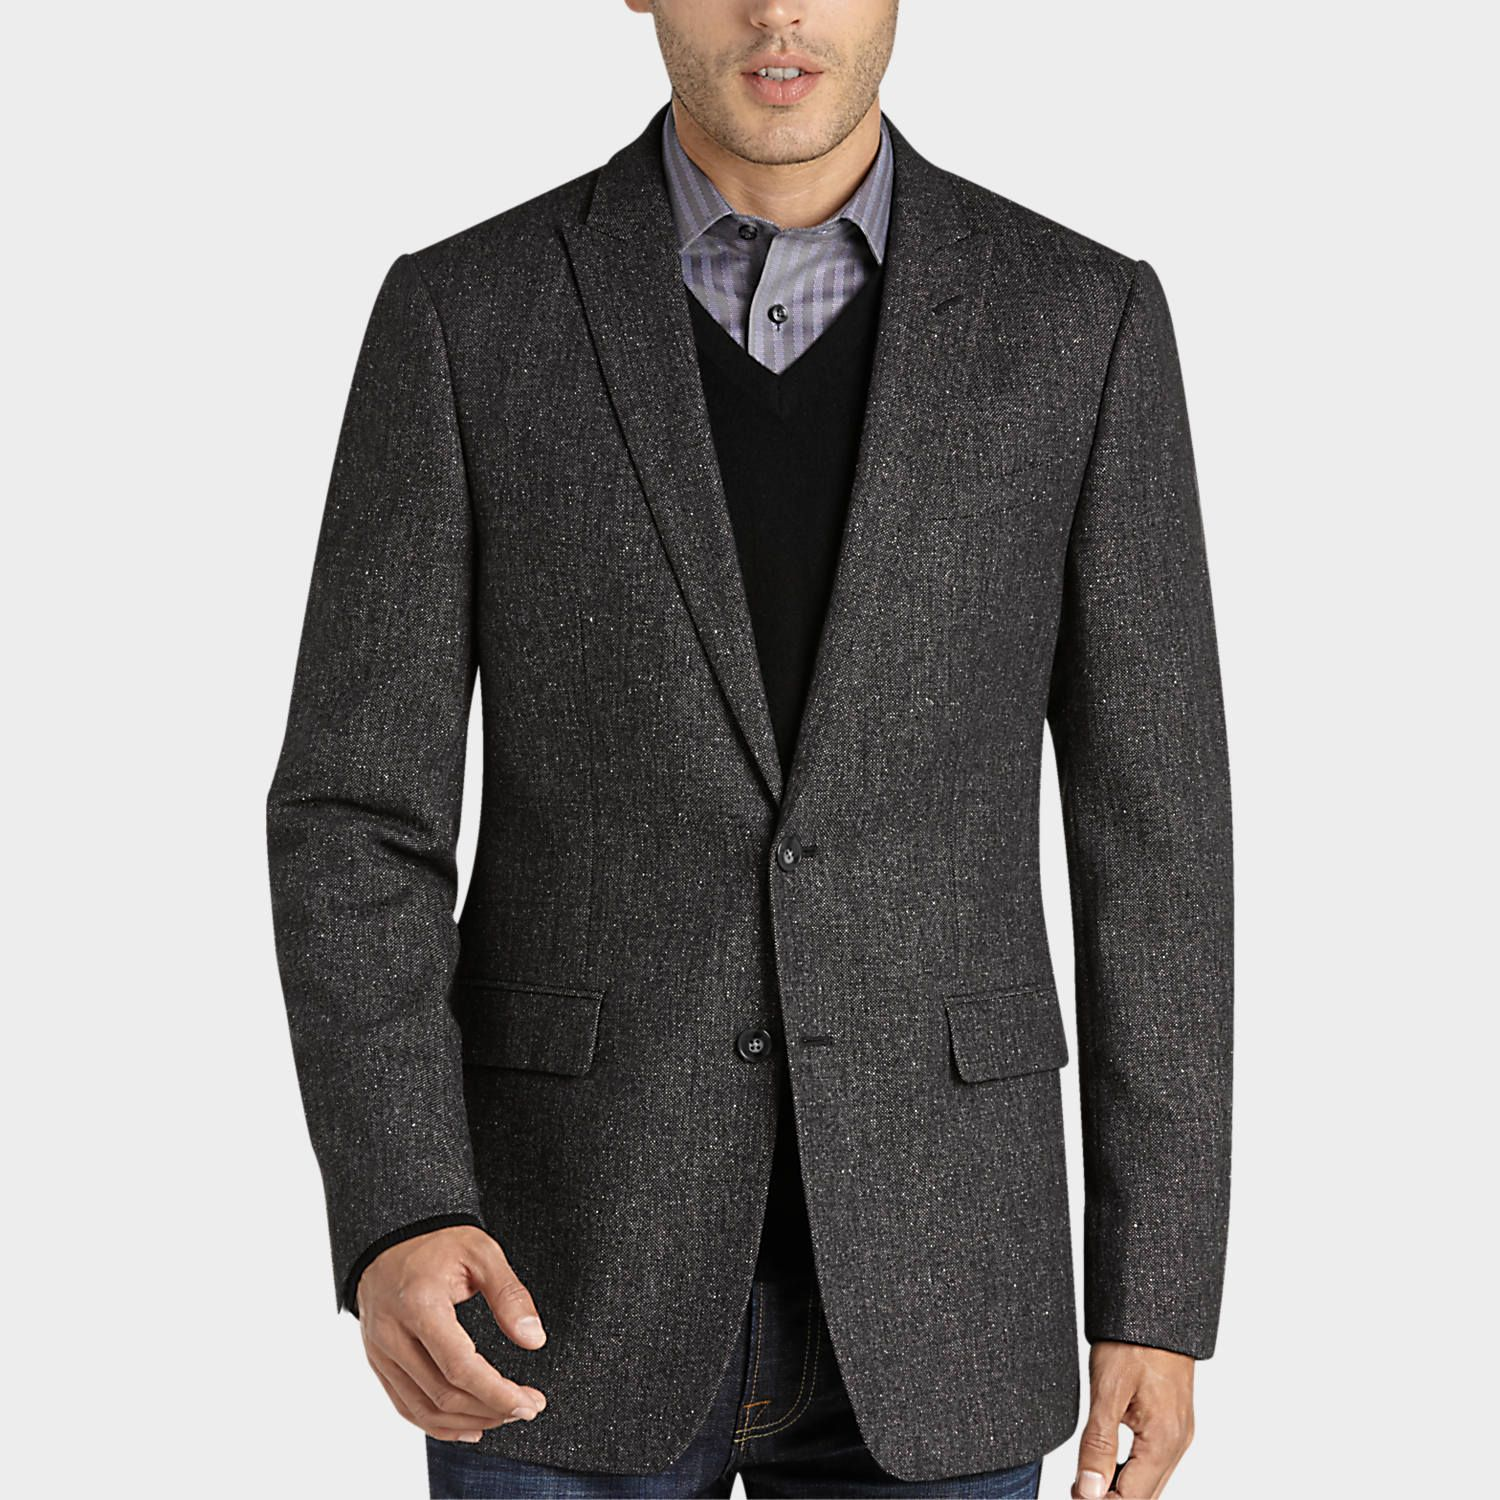 Buy a Calvin Klein Black Tweed Extreme Slim Fit Sport Coat and ...